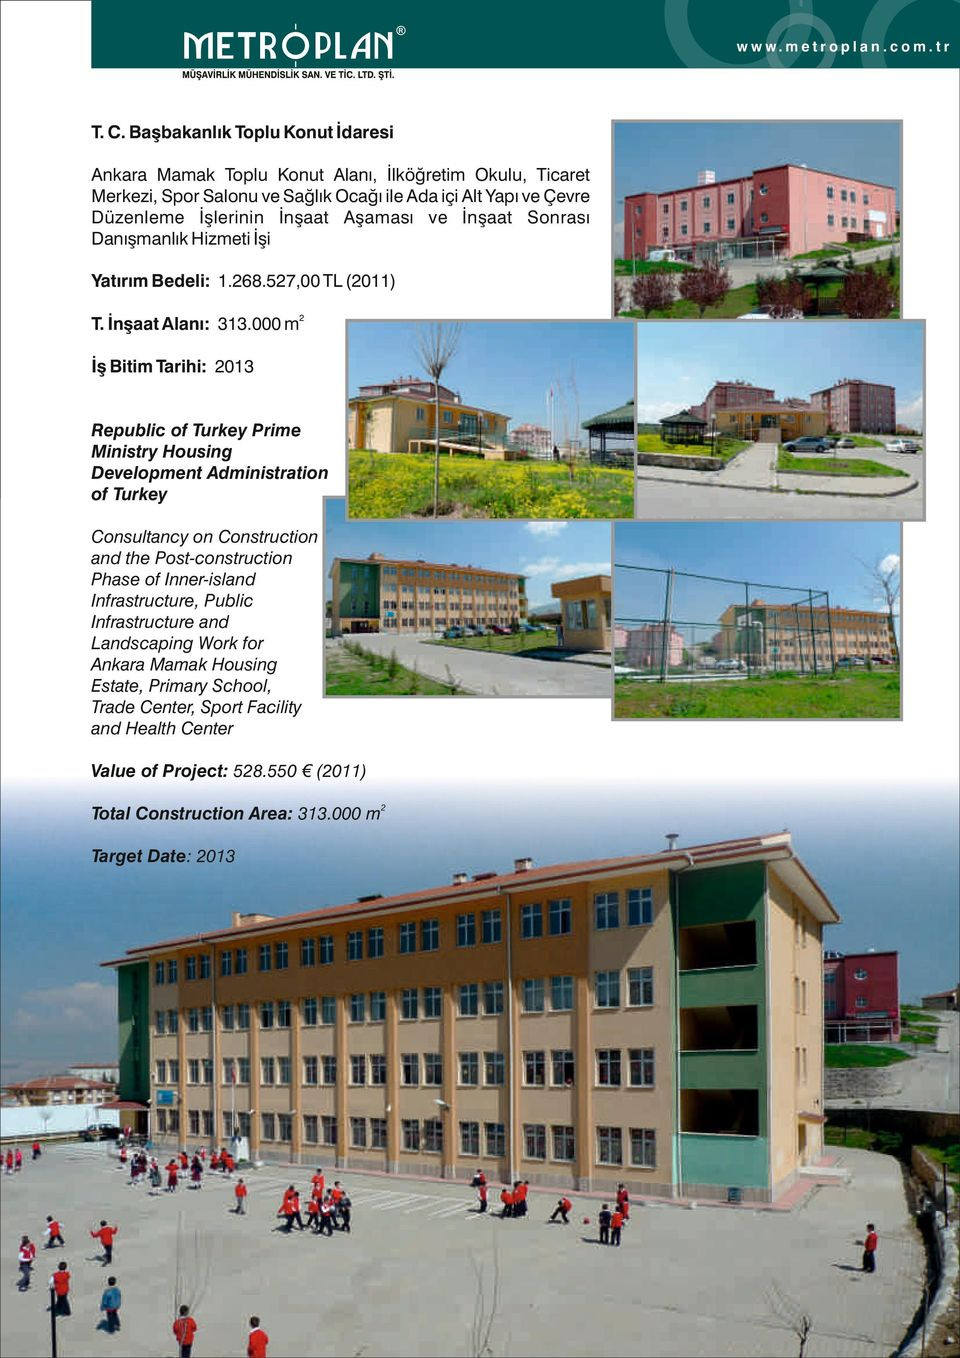 000 m İş Bitim Tarihi: 013 Republic of Turkey Prime Ministry Housing Development Administration of Turkey Consultancy on Construction and the Post-construction Phase of